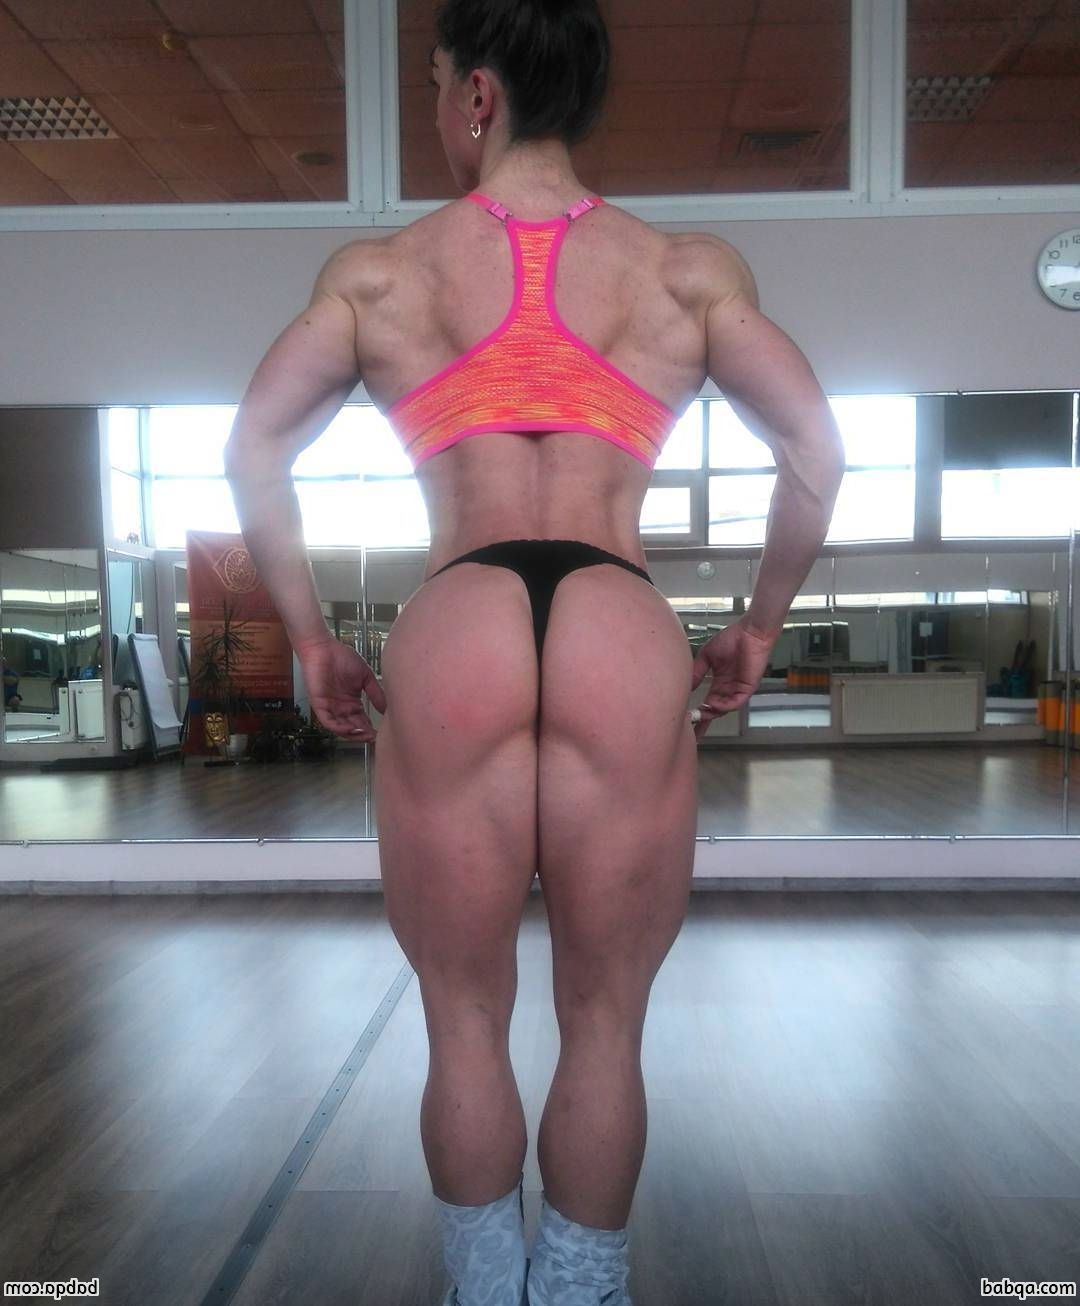 hottest chick with fitness body and muscle arms image from tumblr